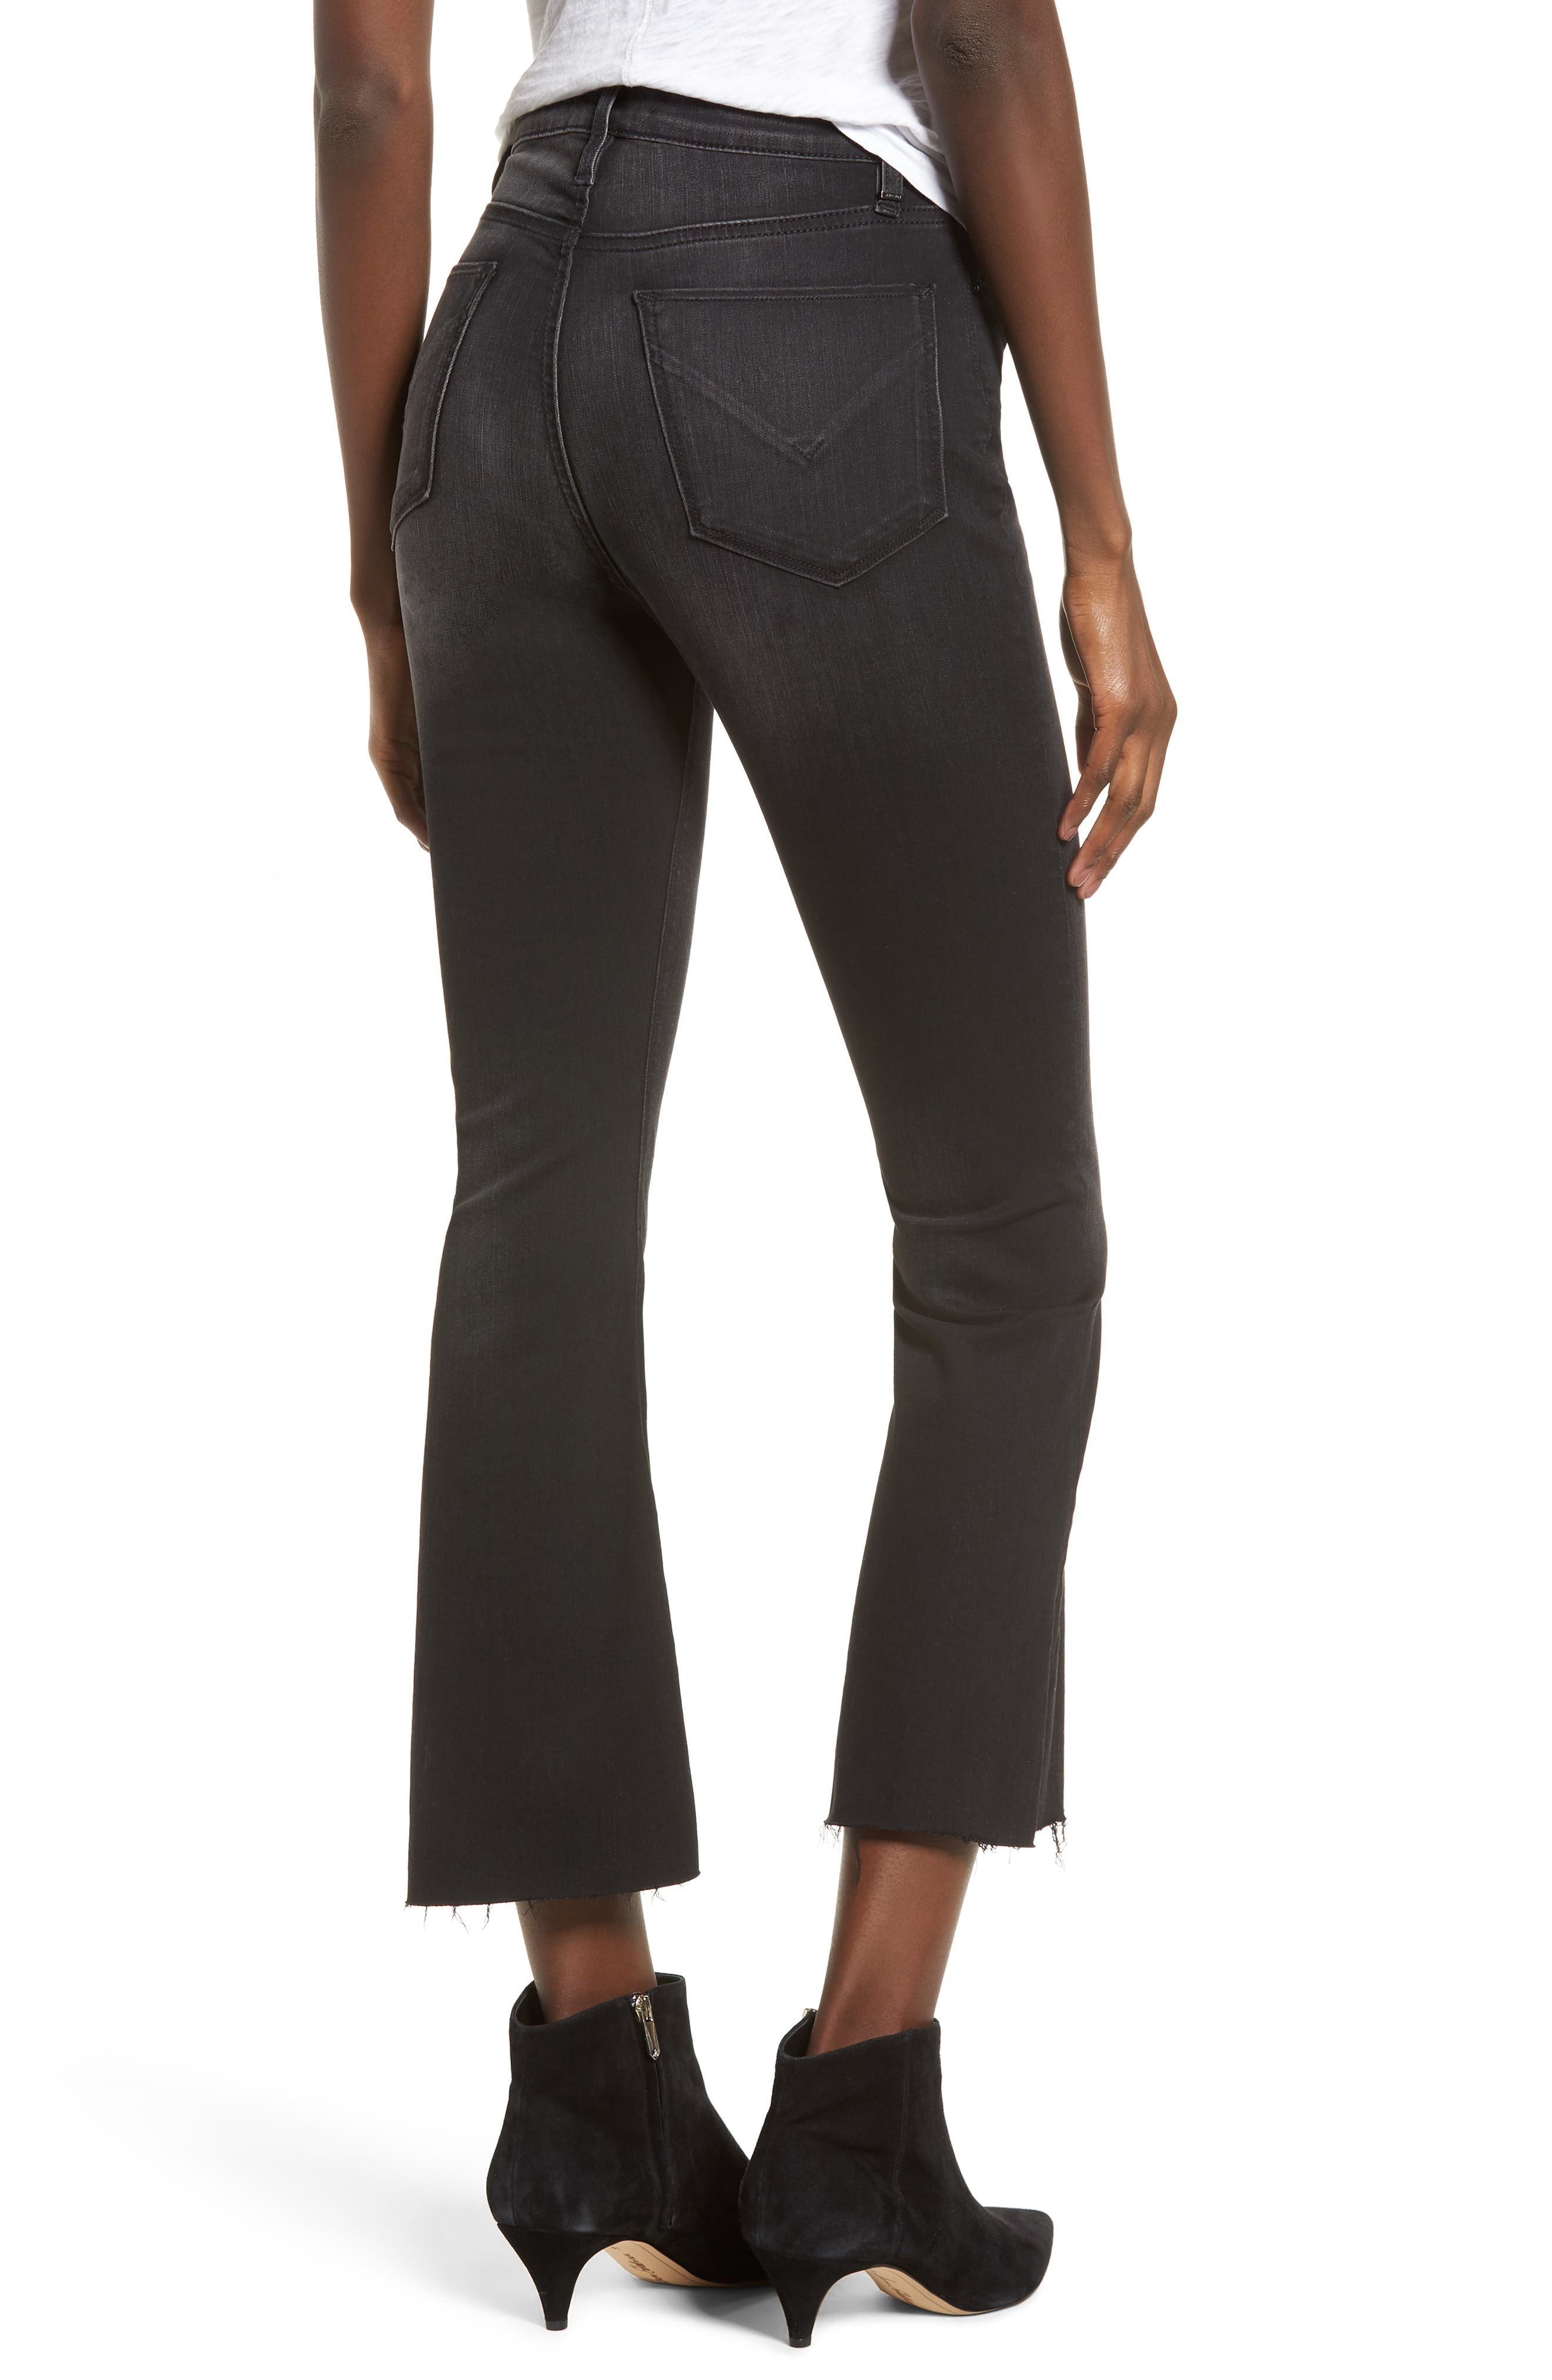 Holly High Waist Crop Flare Jeans,                             Alternate thumbnail 2, color,                             BLACK HOUND